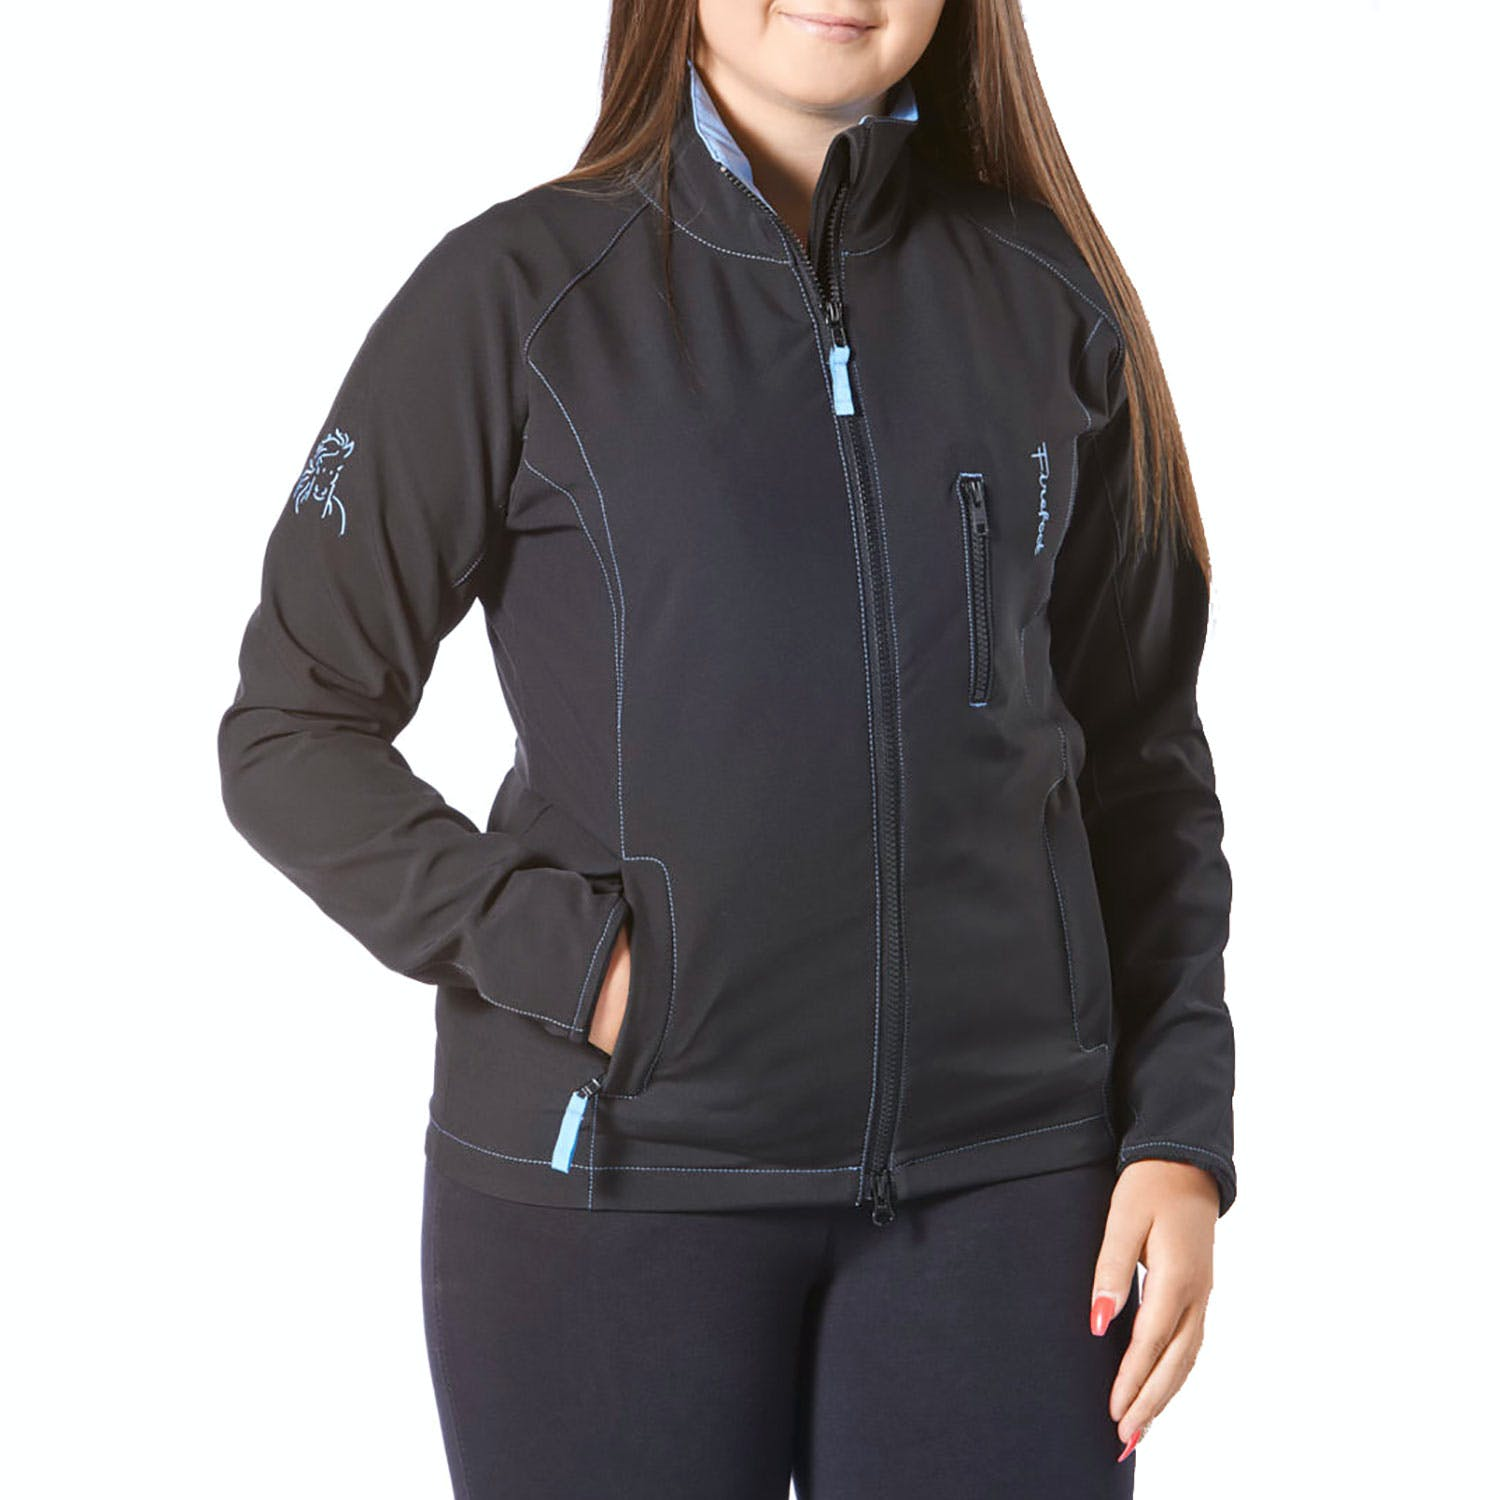 Firefoot Aysgarth Soft Shell Ladies Riding Jacket From